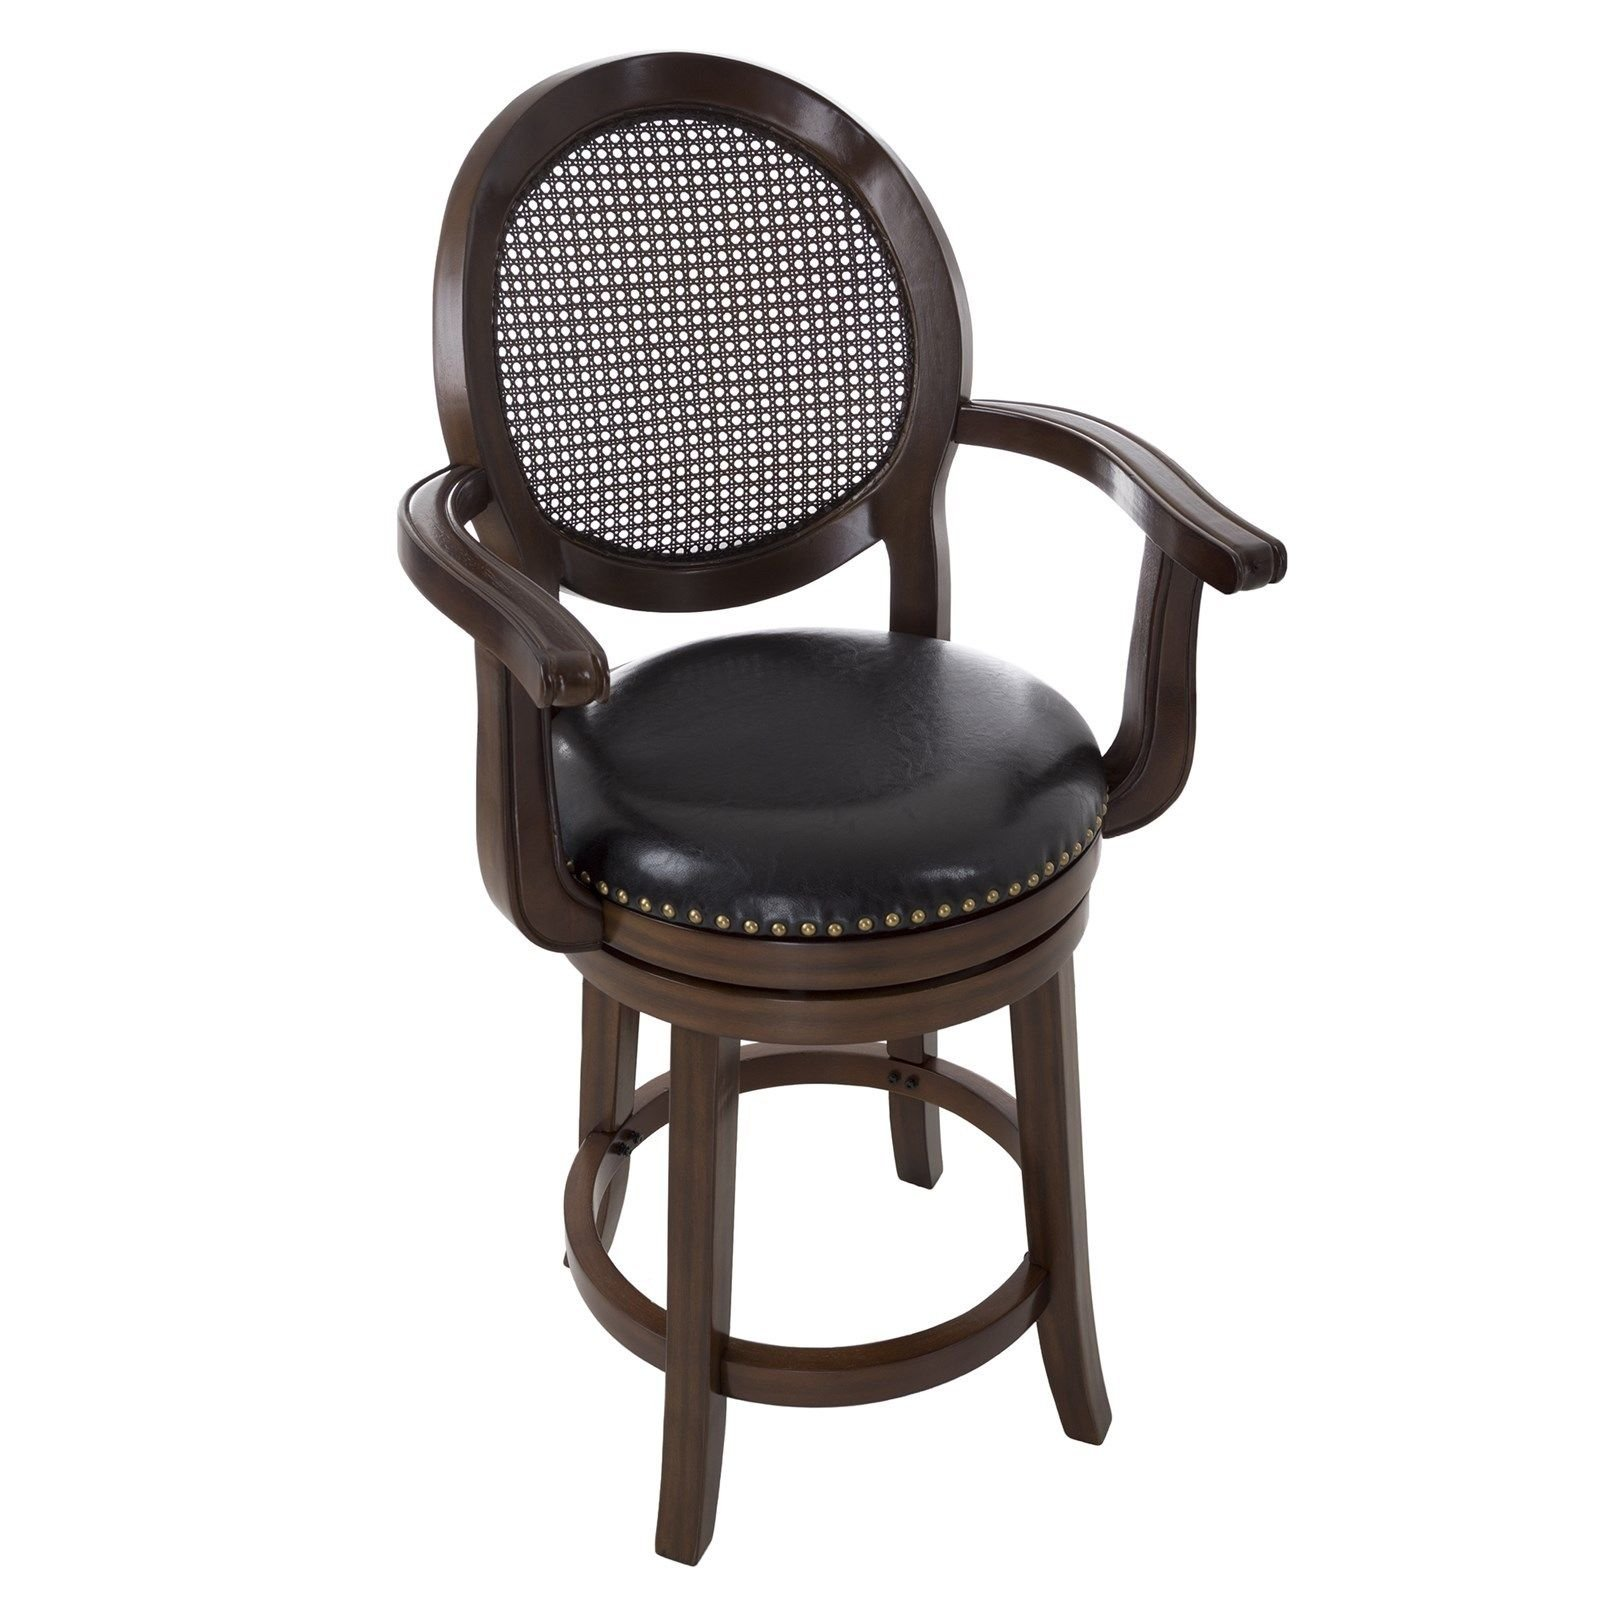 Energi8_5st Professional 26 Inch Seat Wood and Leather Swivel Stool with Back